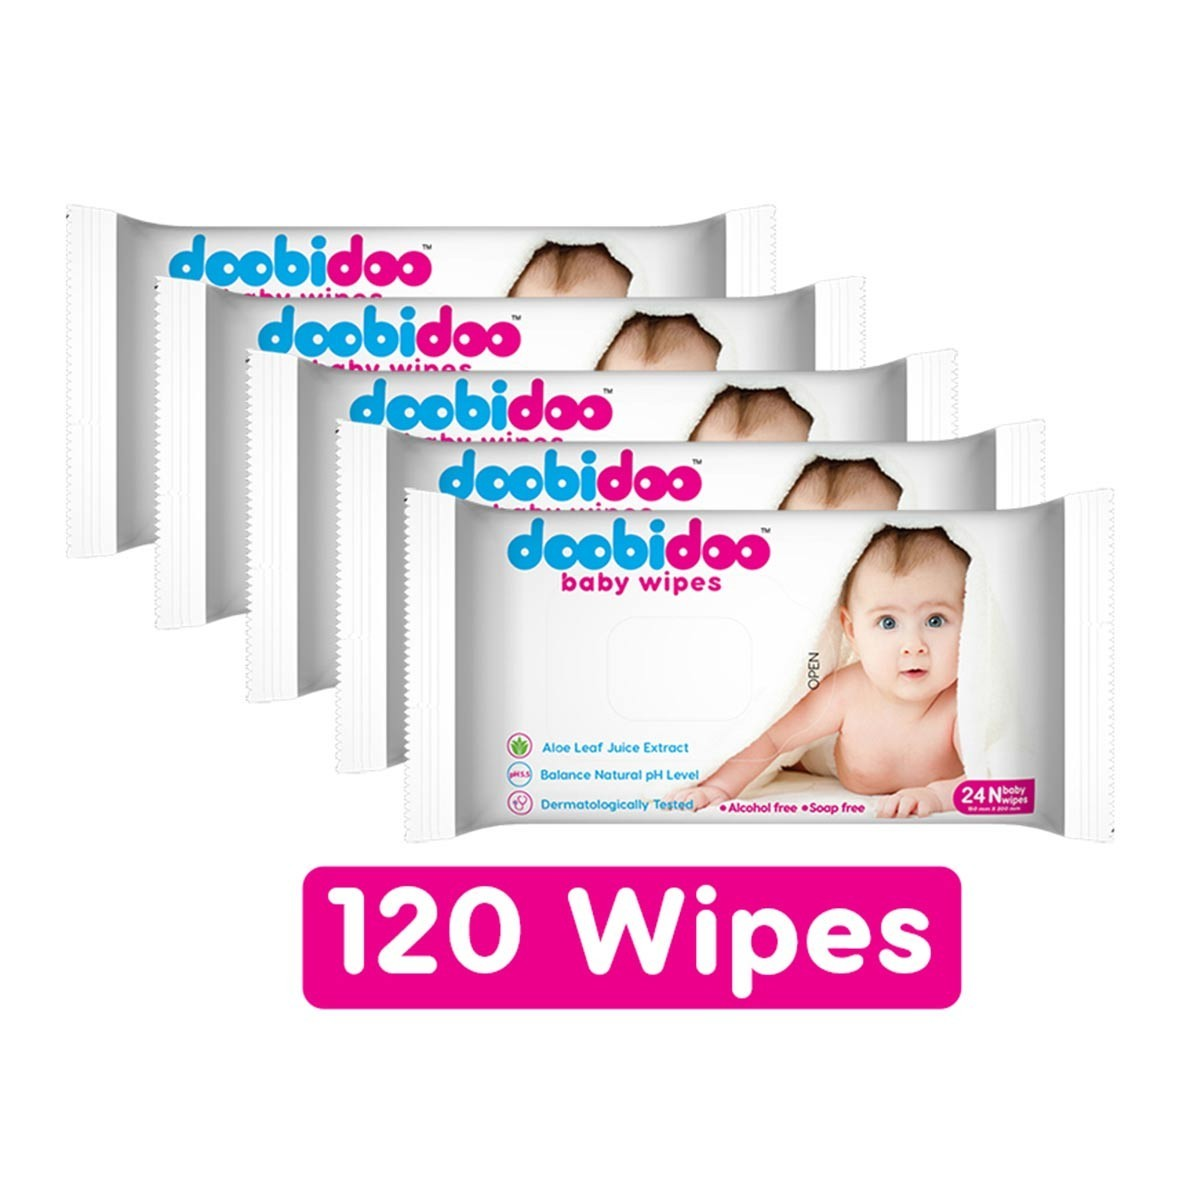 Doobidoo Baby Wipes 24-N (Combo of 5)